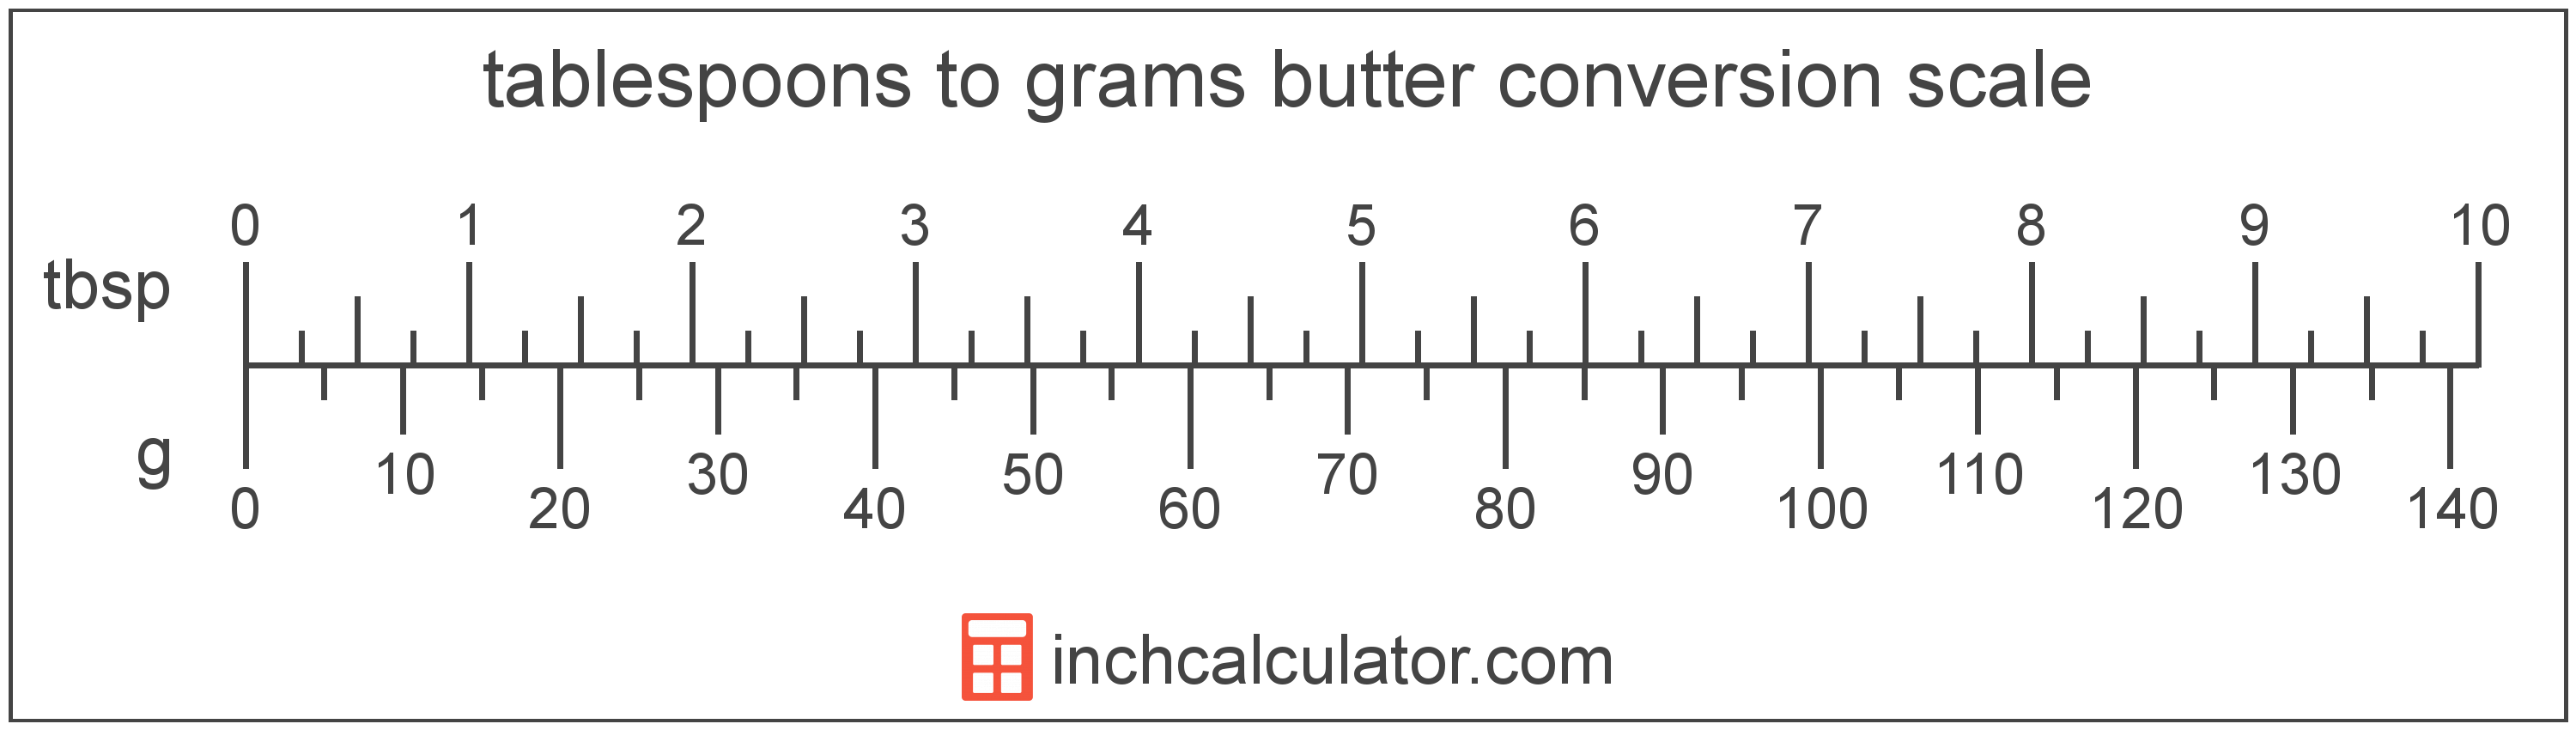 Tablespoon To Grams Conversion